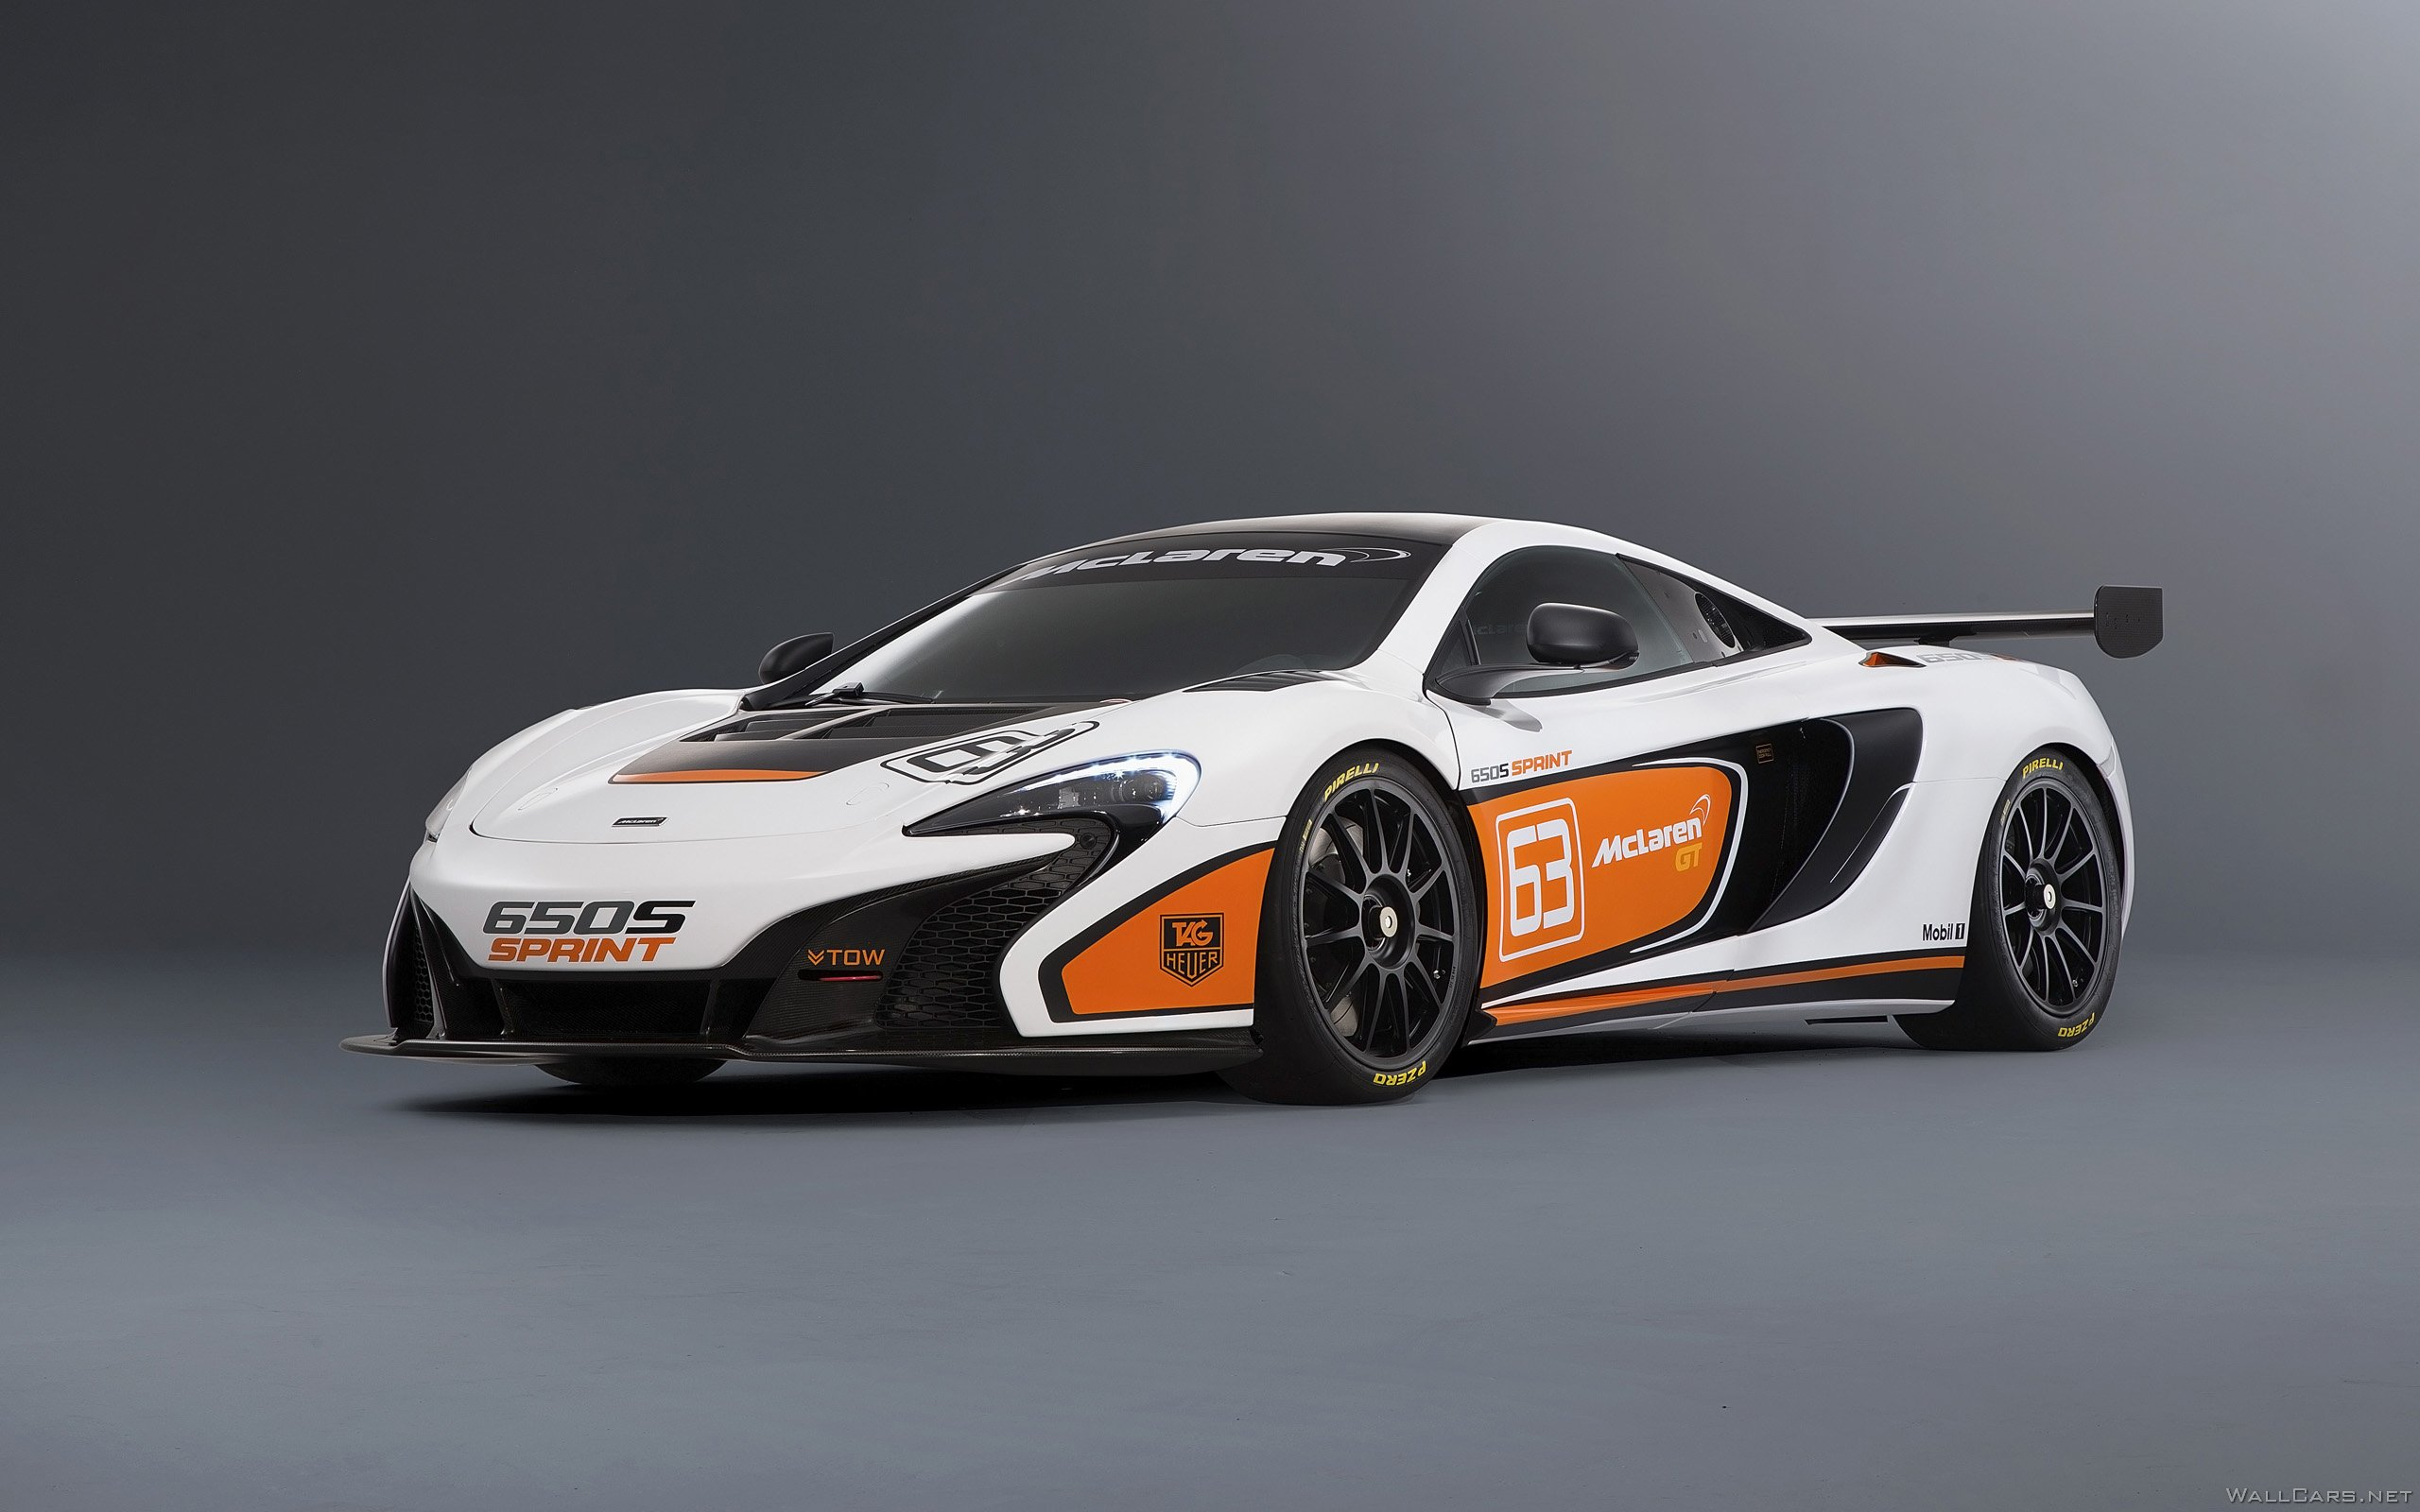 Front McLaren 650S Sprint, 2015, sport, hood, wheels, vinyl, photo, wheels, headlights